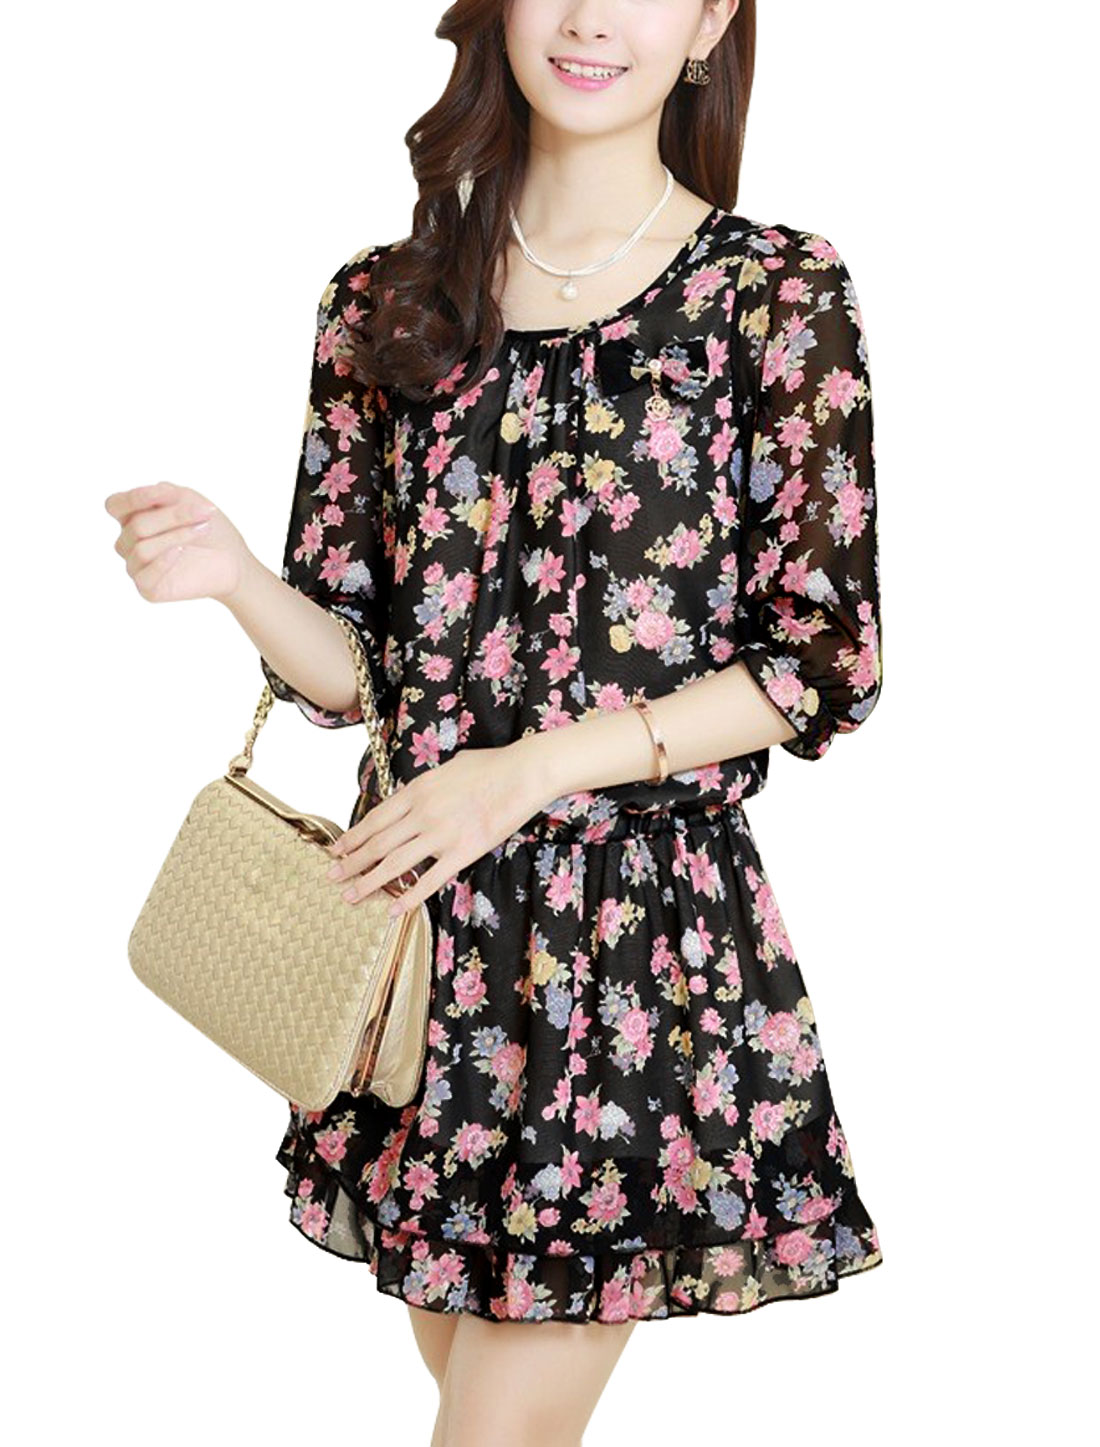 Lady Half Sleeve Floral Prints Lining Dress Black Fuchsia M